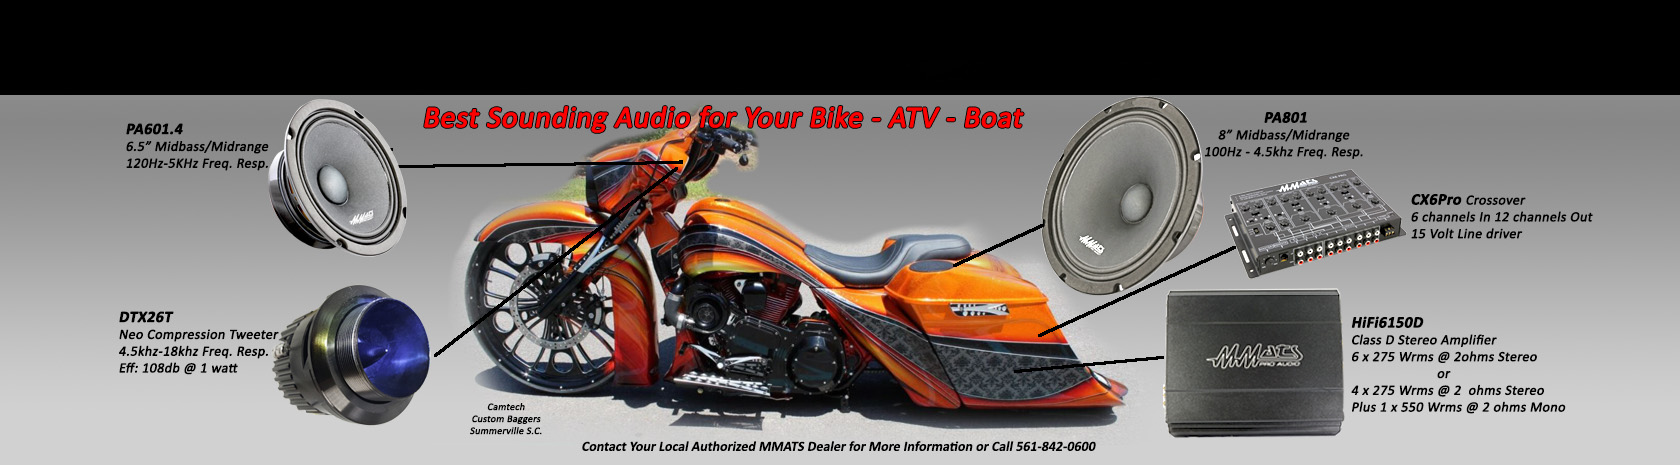 Bagger Audio and Motorcycle sound systems